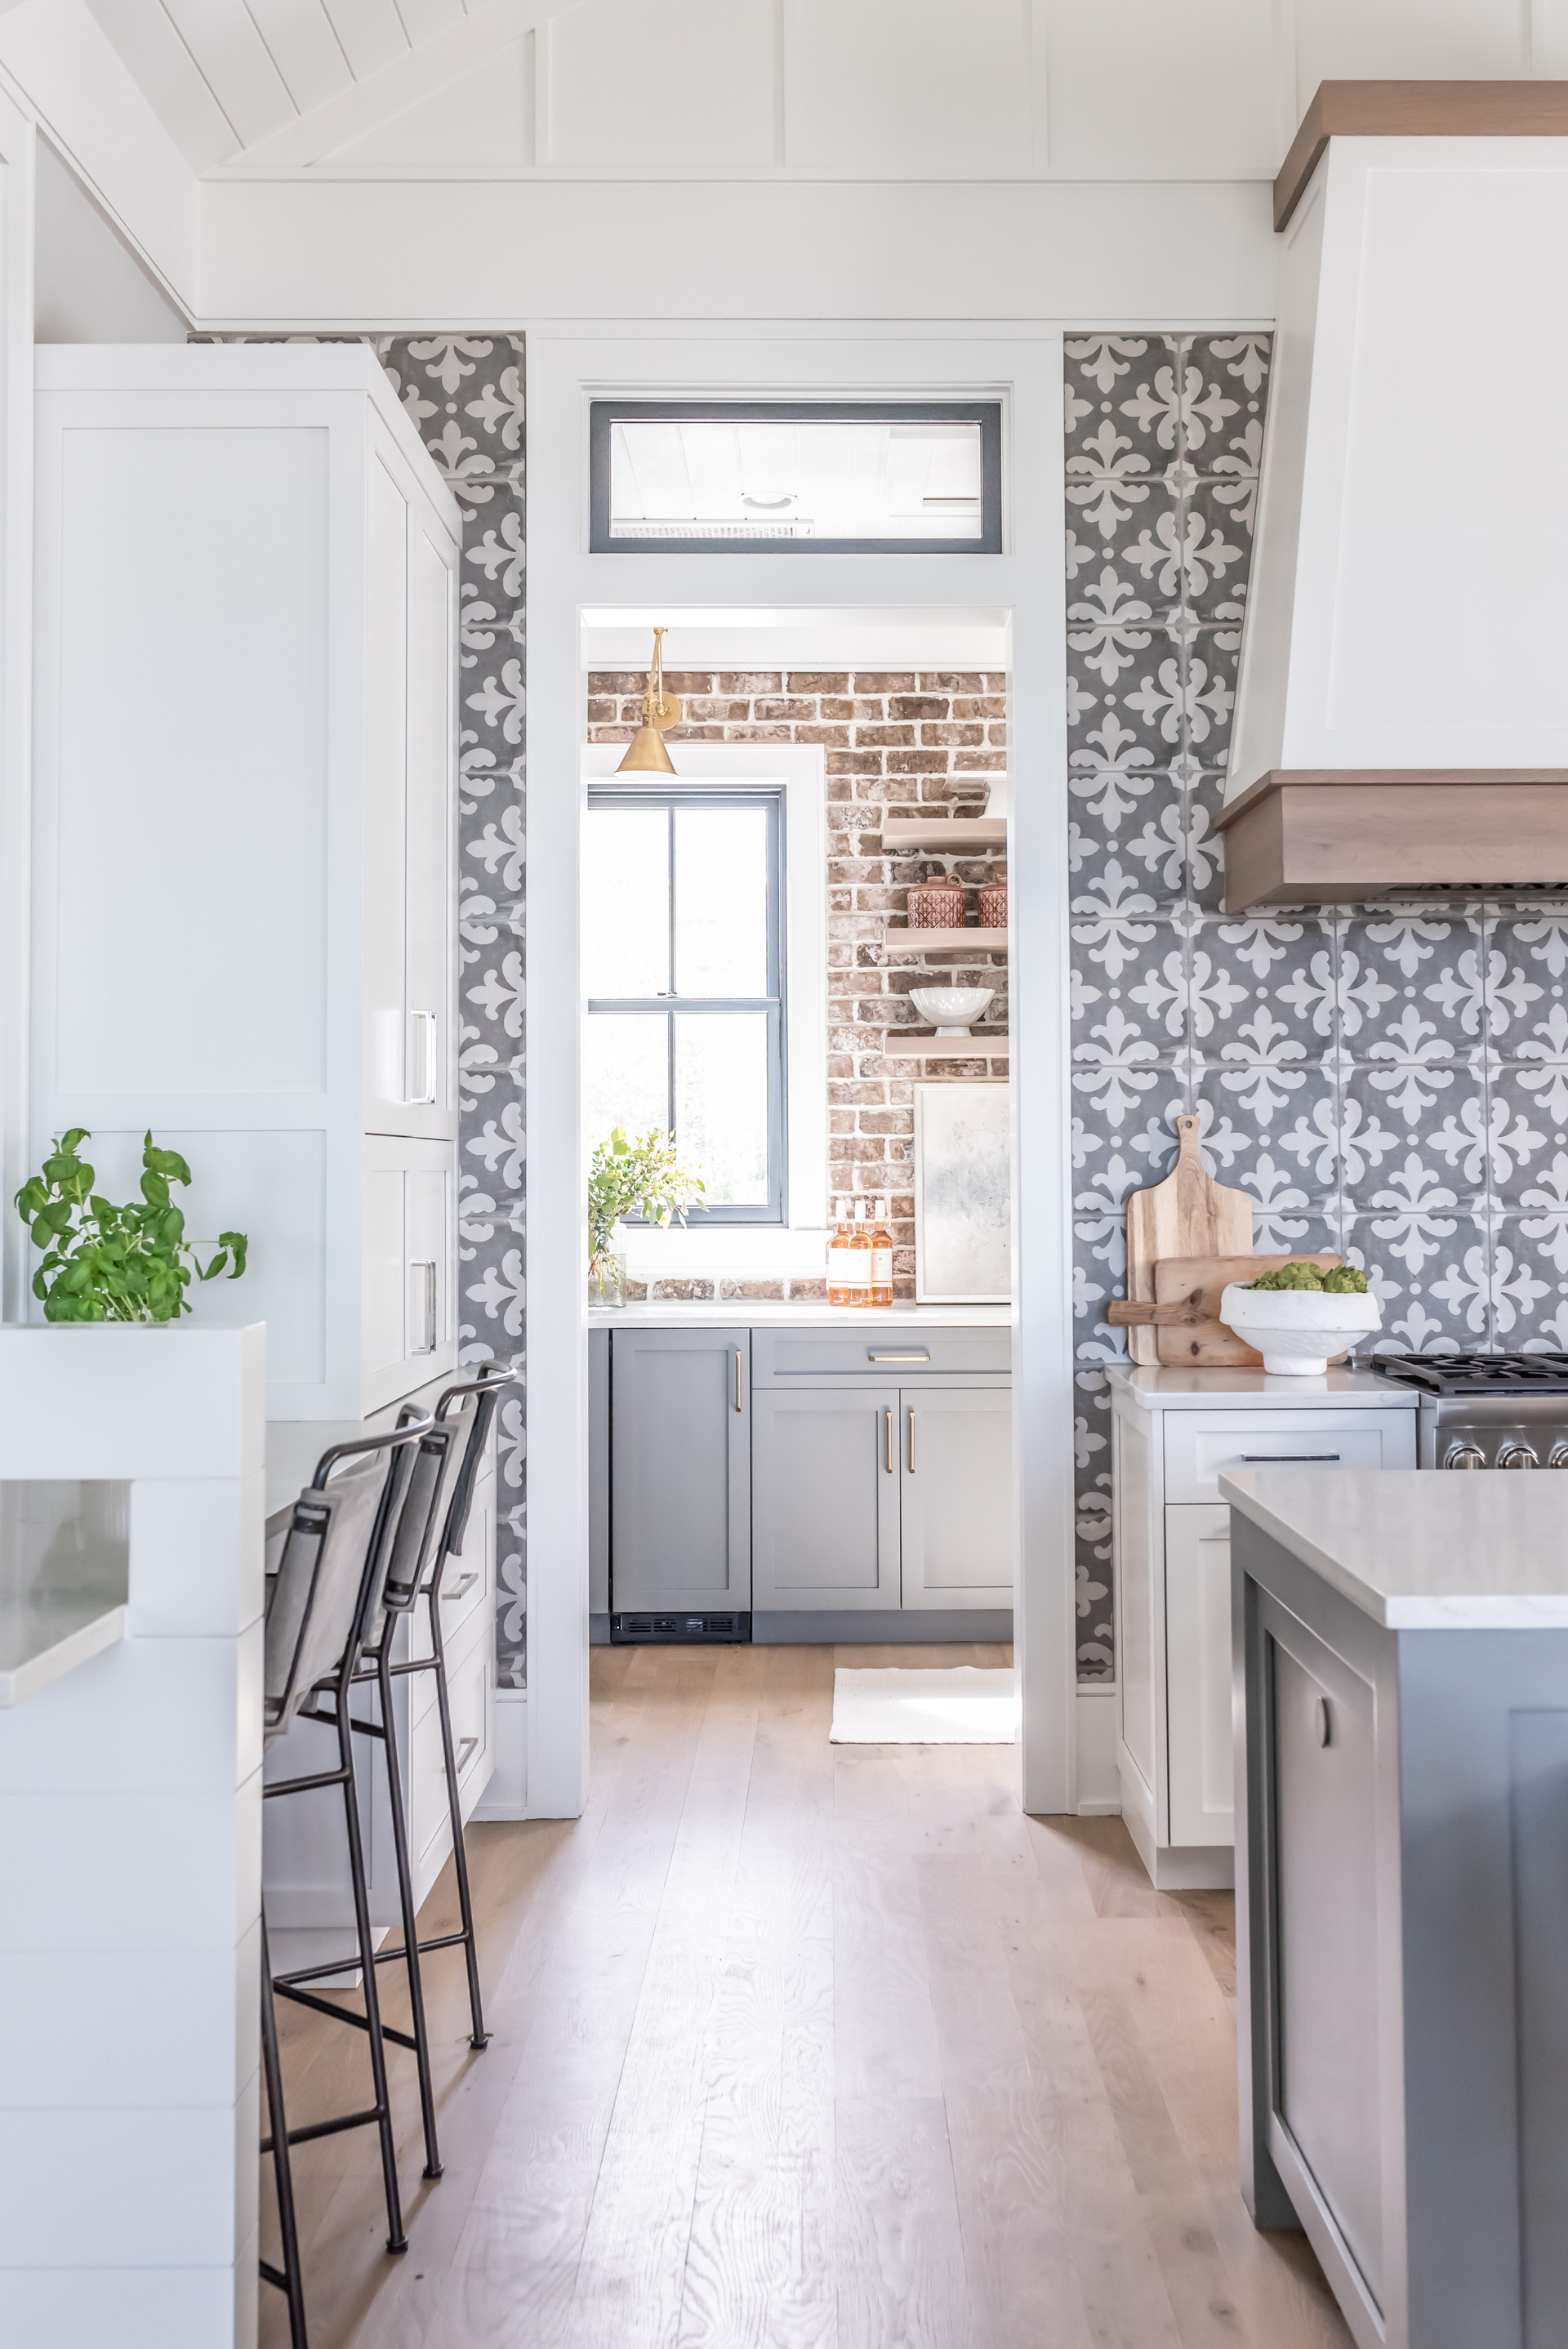 ADC-May1-2019-Kitchen-7.jpg